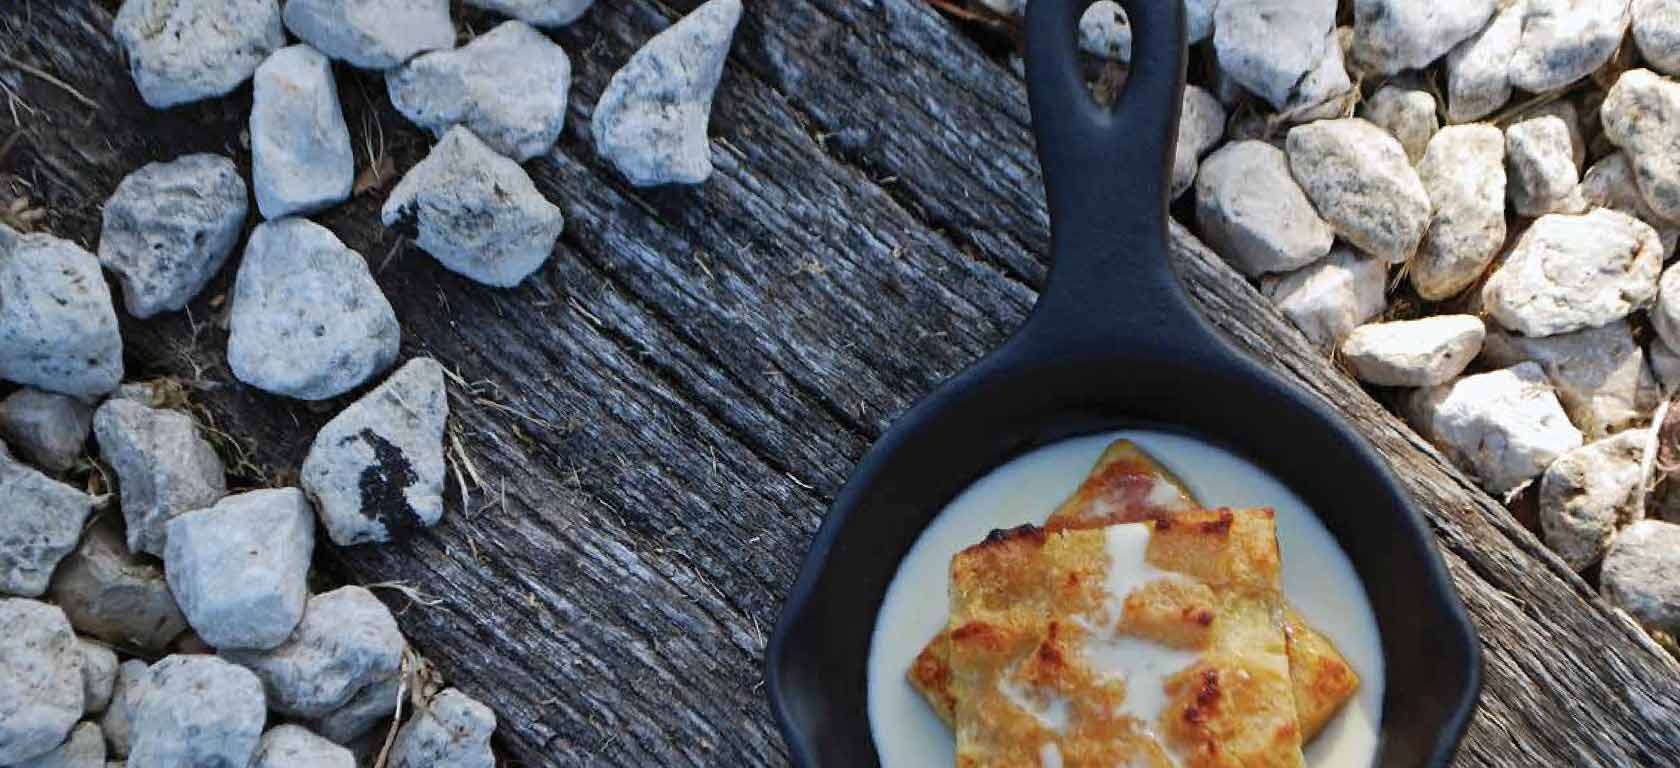 Black ceramic skillet with appetizing meal sitting on a wooden, rustic looking setting.